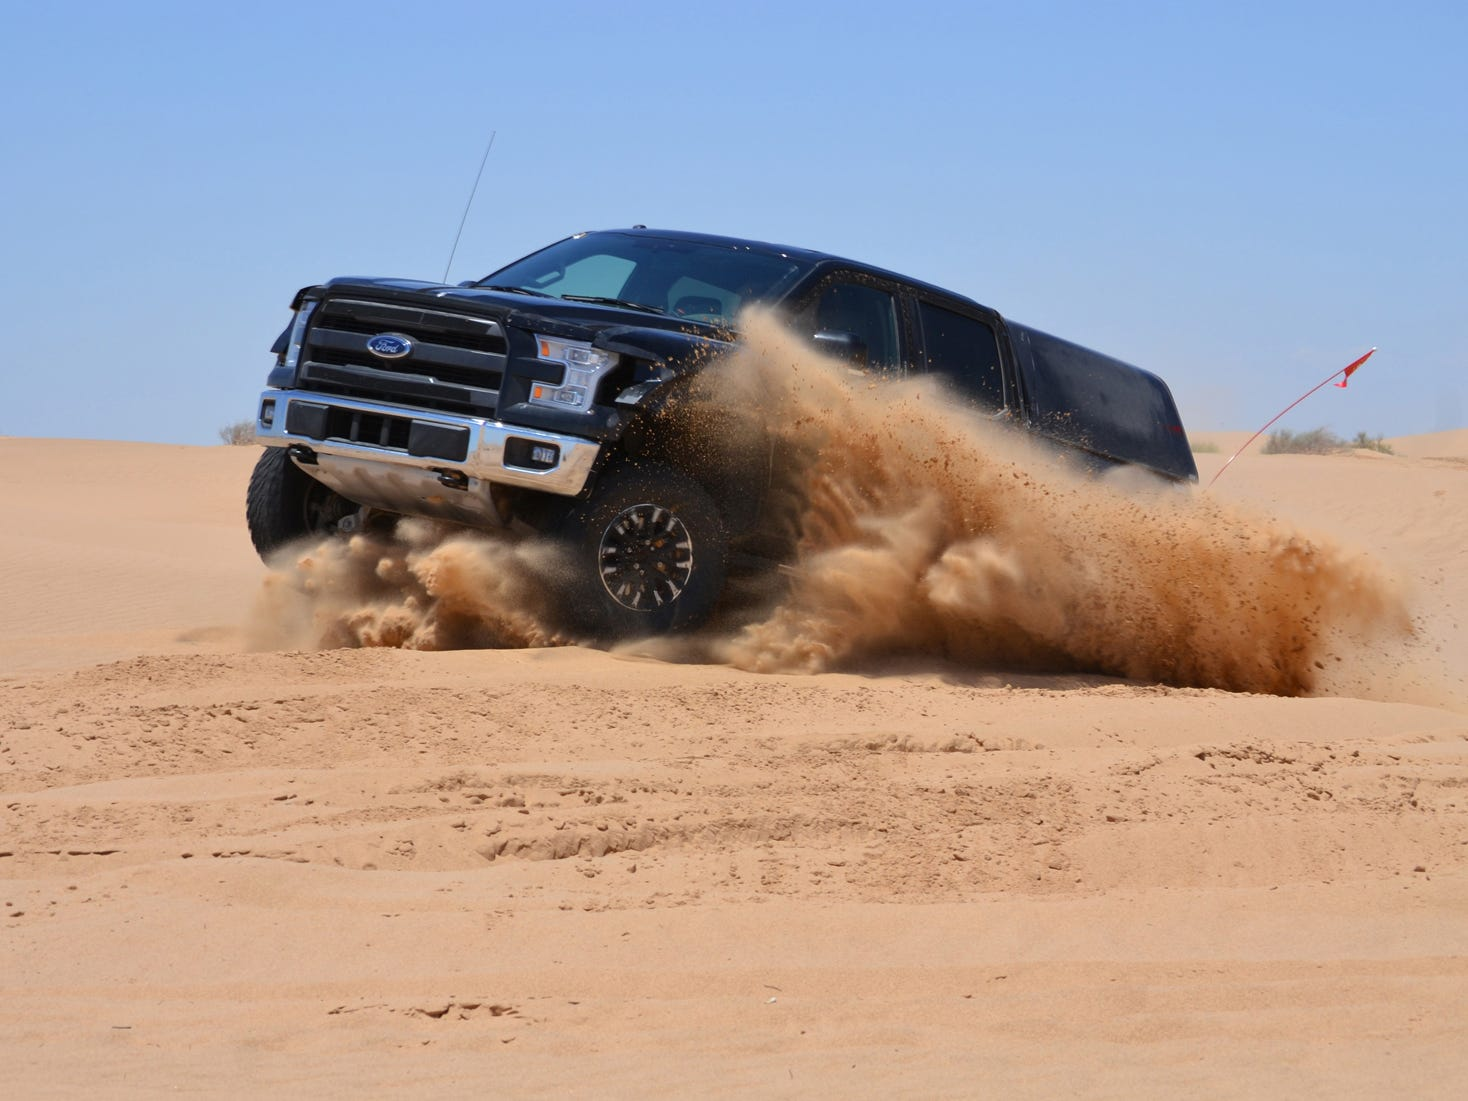 2017 F-150 Raptor prototype undergoing durability testing in southern California.